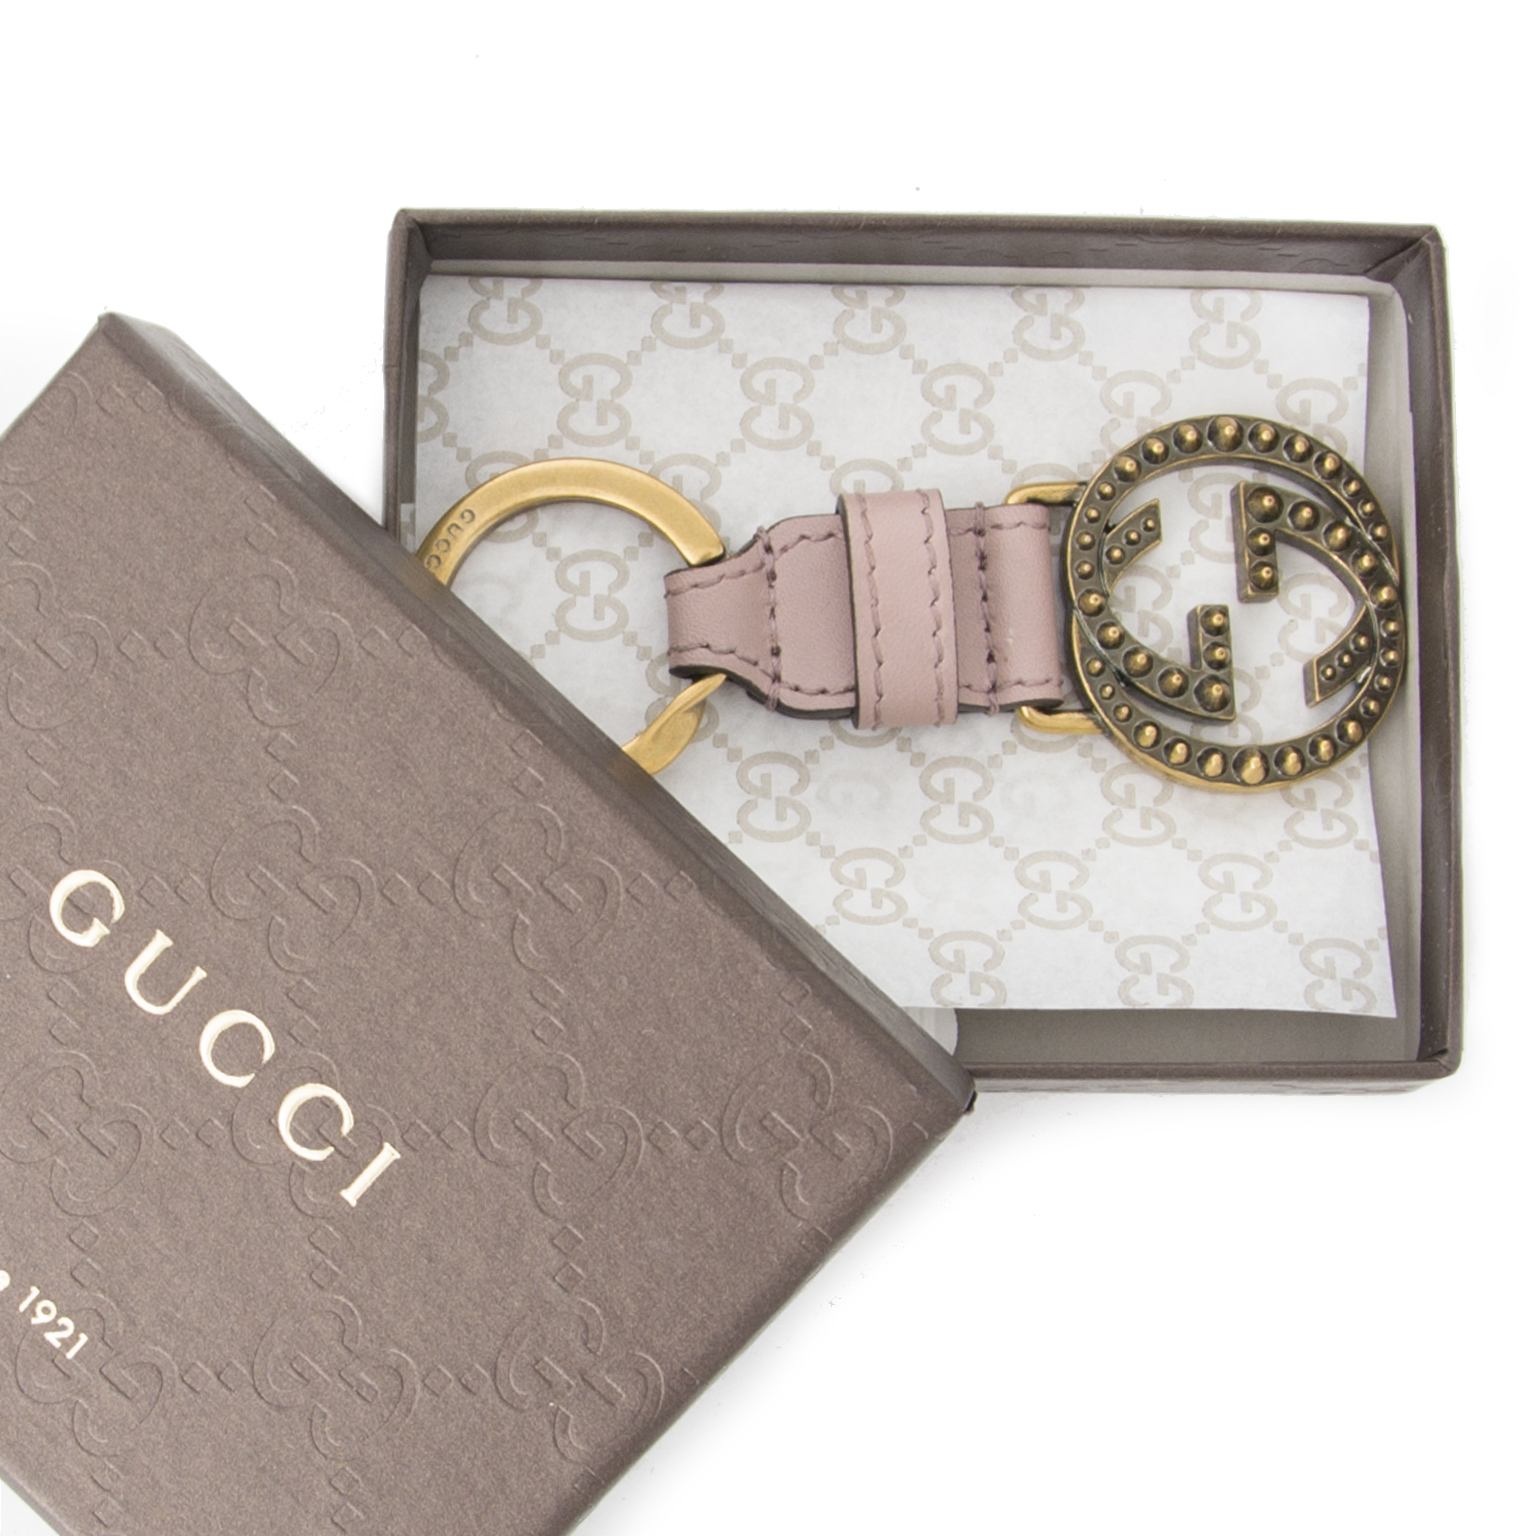 Buy authentic Gucci keychain at the right price at LabelLOV vintage webshop. Luxe, vintage, fashion. Safe and secure online shopping. Antwerp, Belgium.